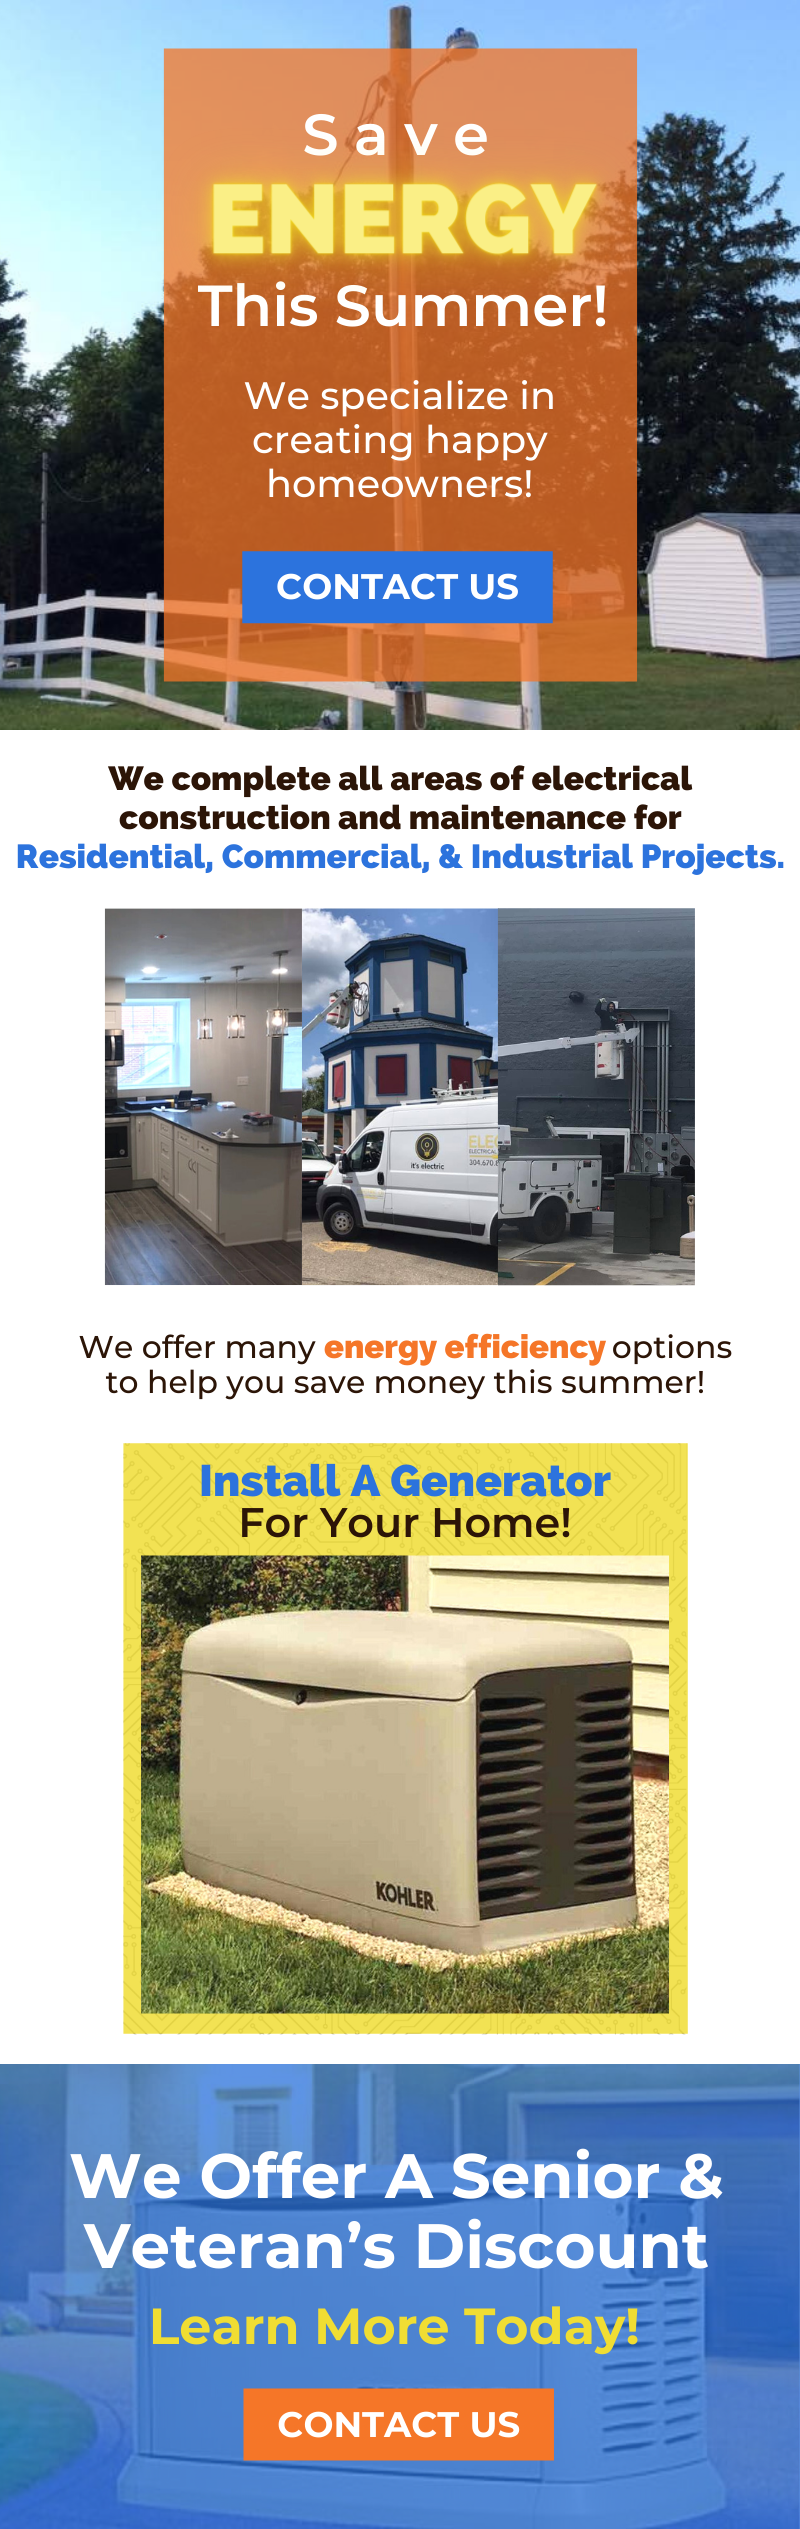 Save Energy This Summer! 3